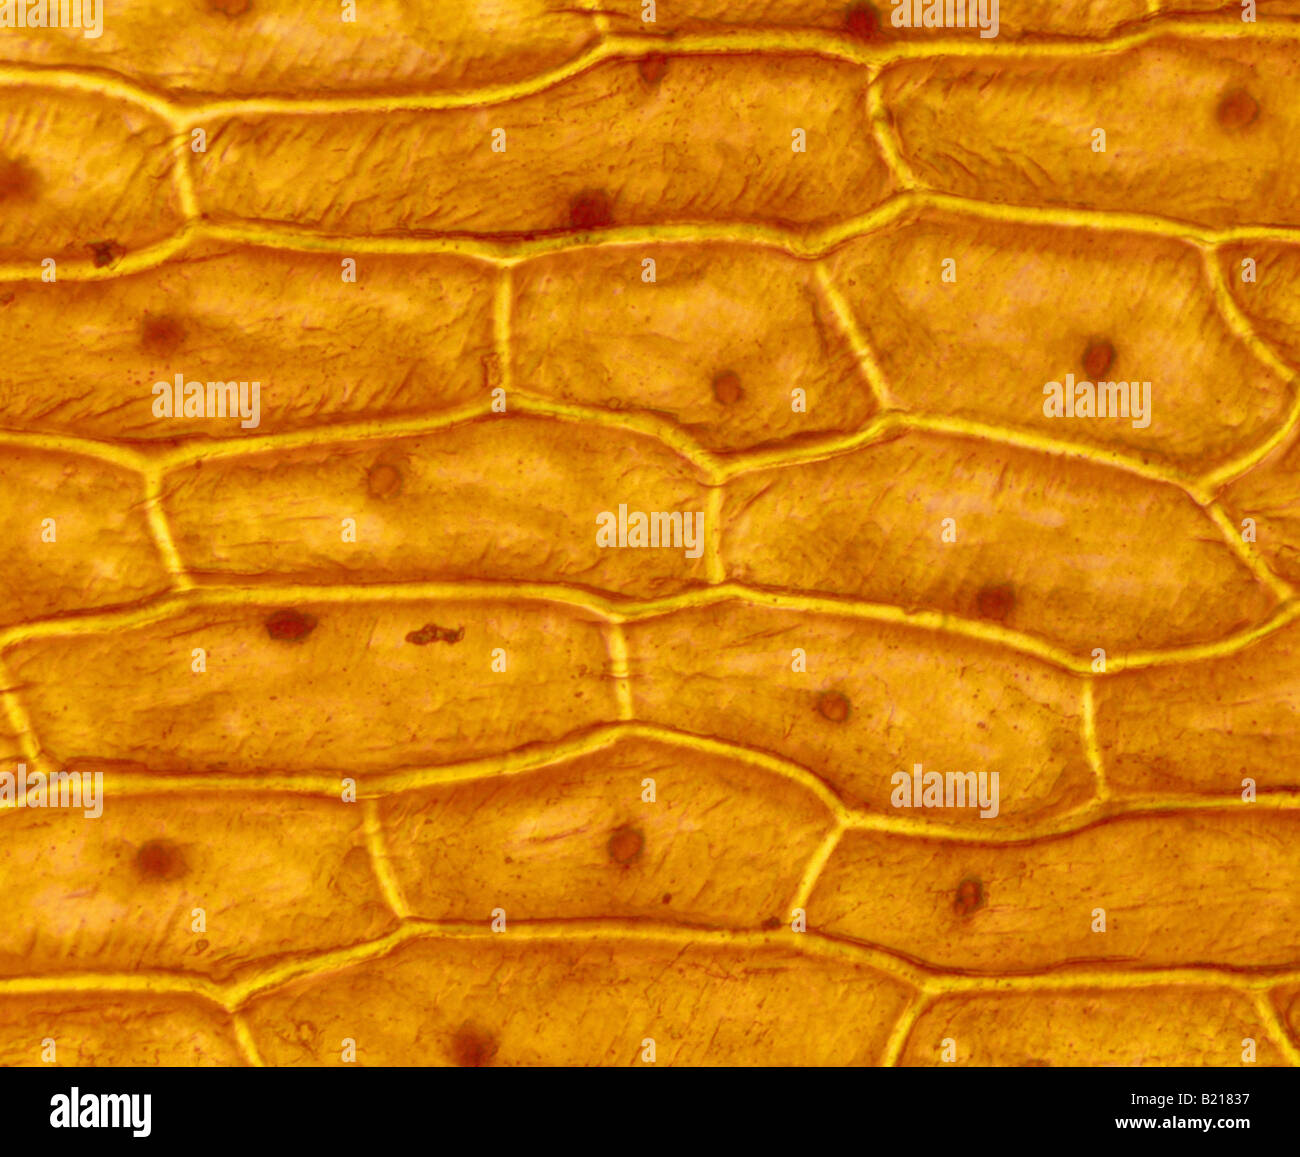 Onion Cells Stained With Iodine Under Microscope Onion Epidermal Cell Stained